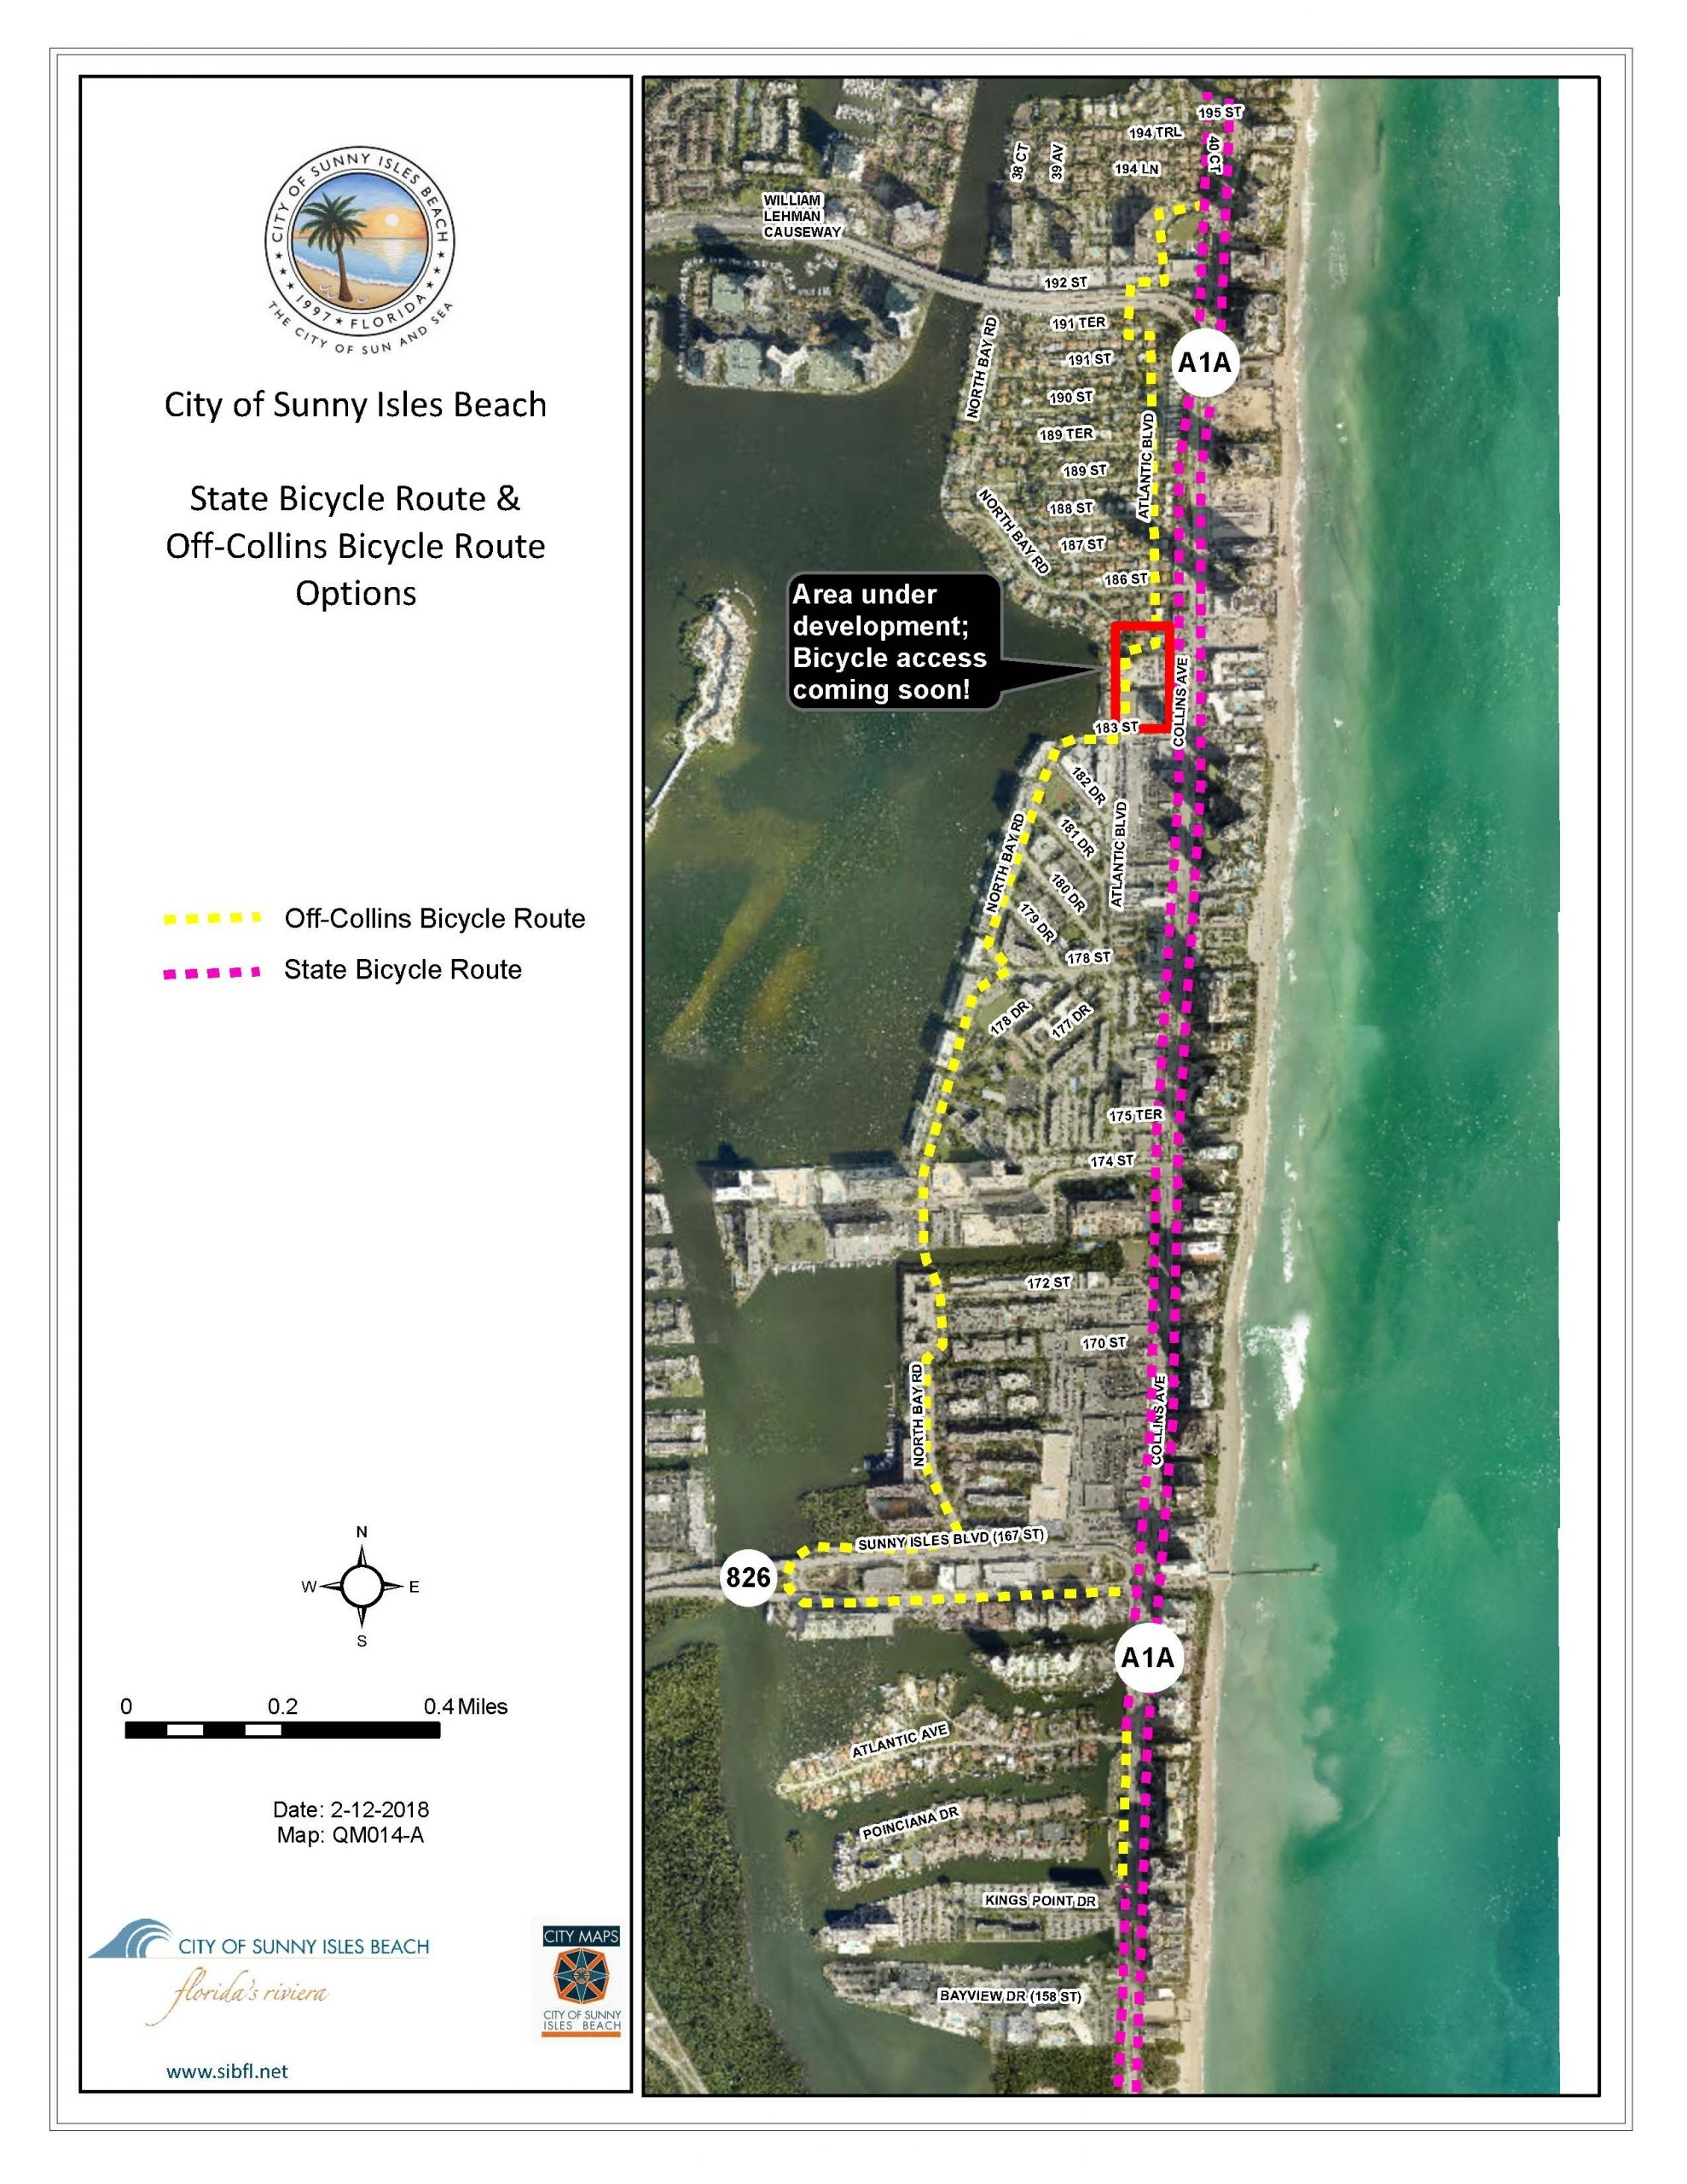 City Maps - City Of Sunny Isles Beach intended for Miami Beach Residential Parking Zone Map